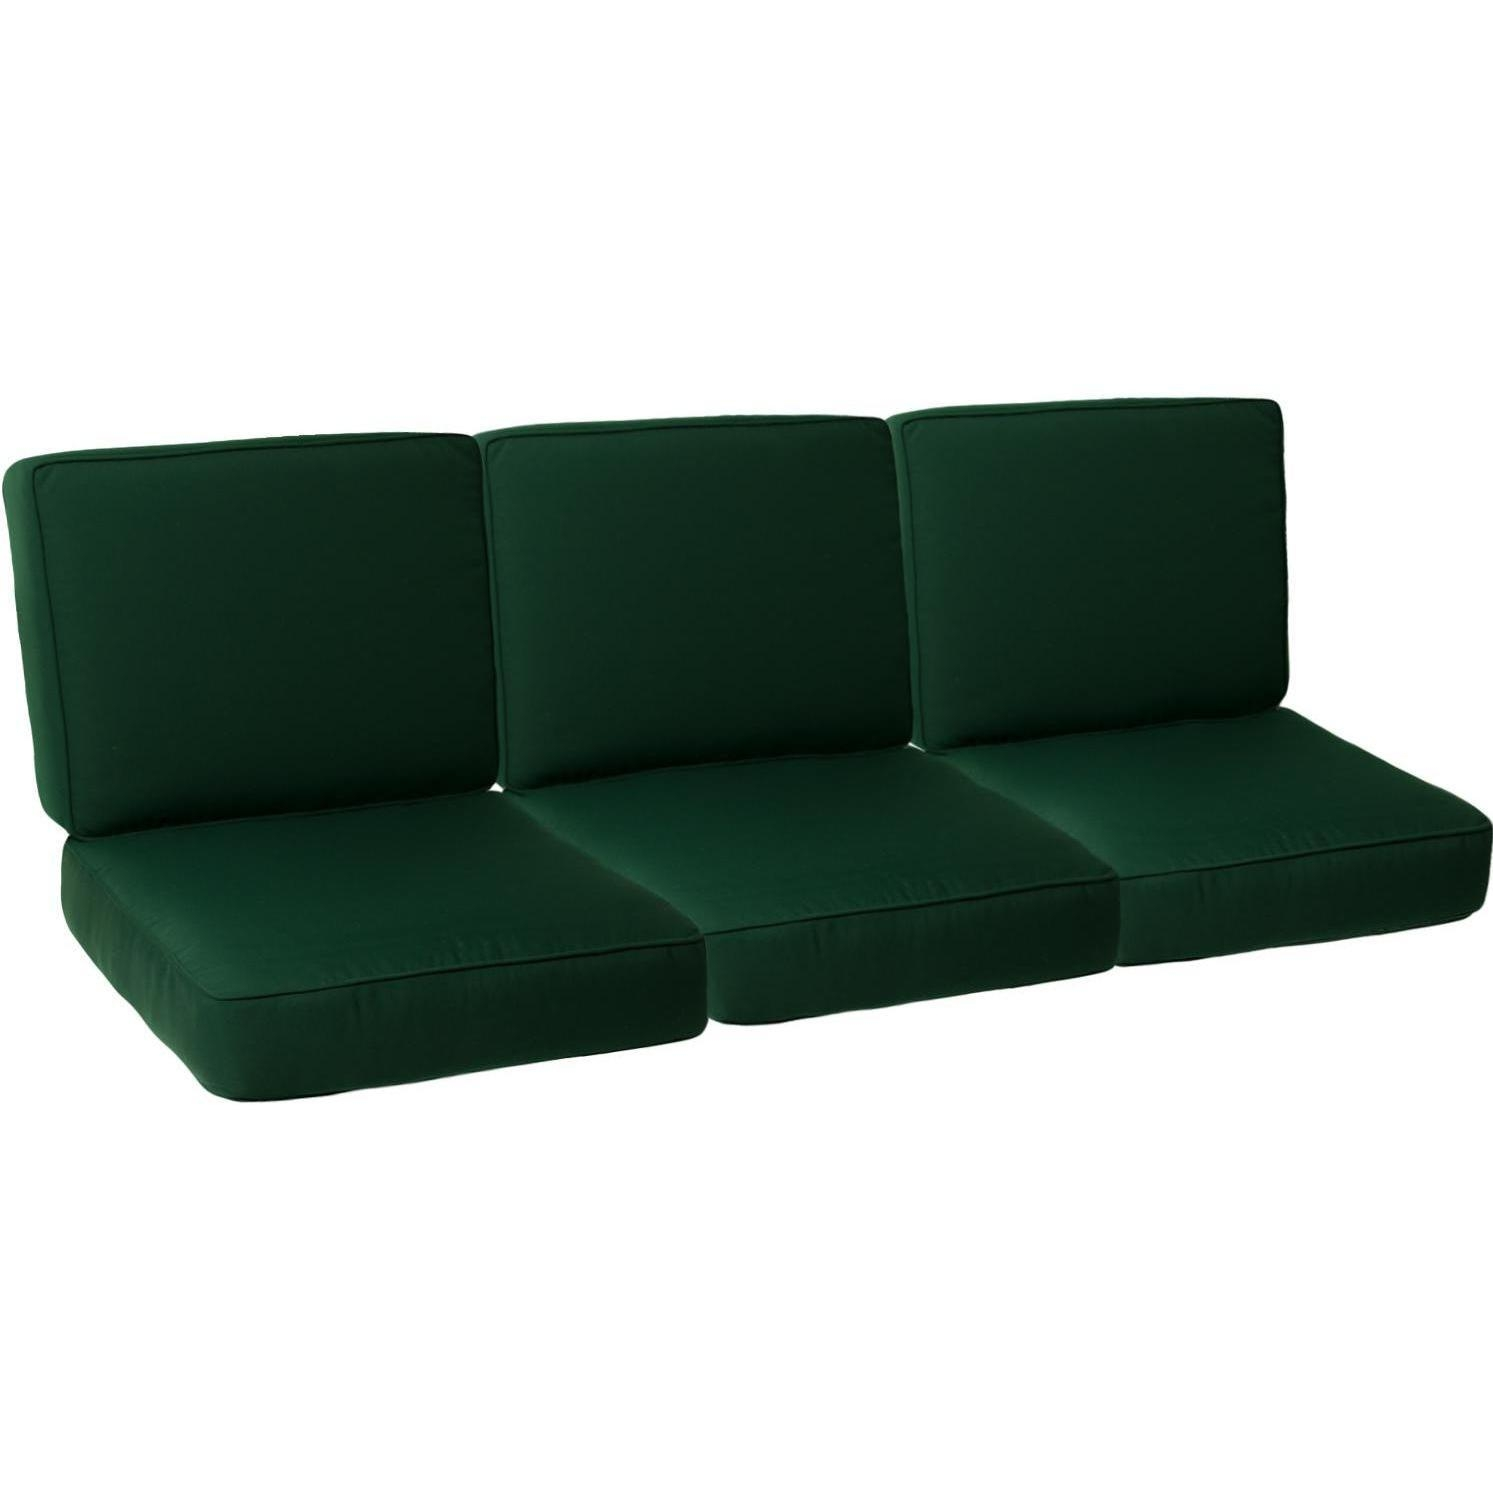 Decorating: Red Replacement Sofa Cushions For Lounge Chair With Regard To Sofa Accessories (Image 8 of 20)